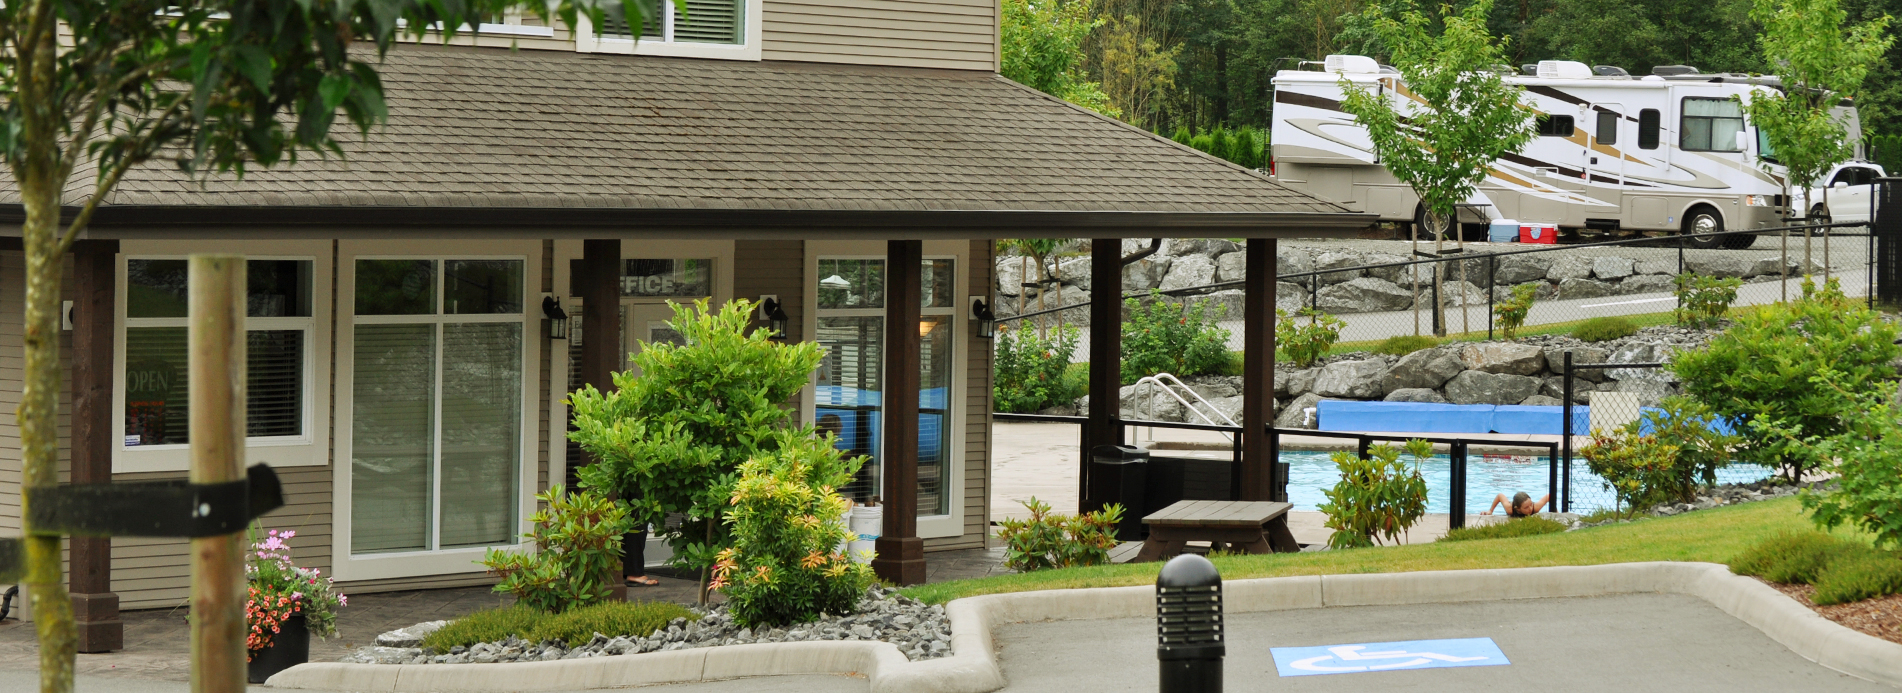 <font color='white'>Welcome to one of BC's best RV Parks!</font>